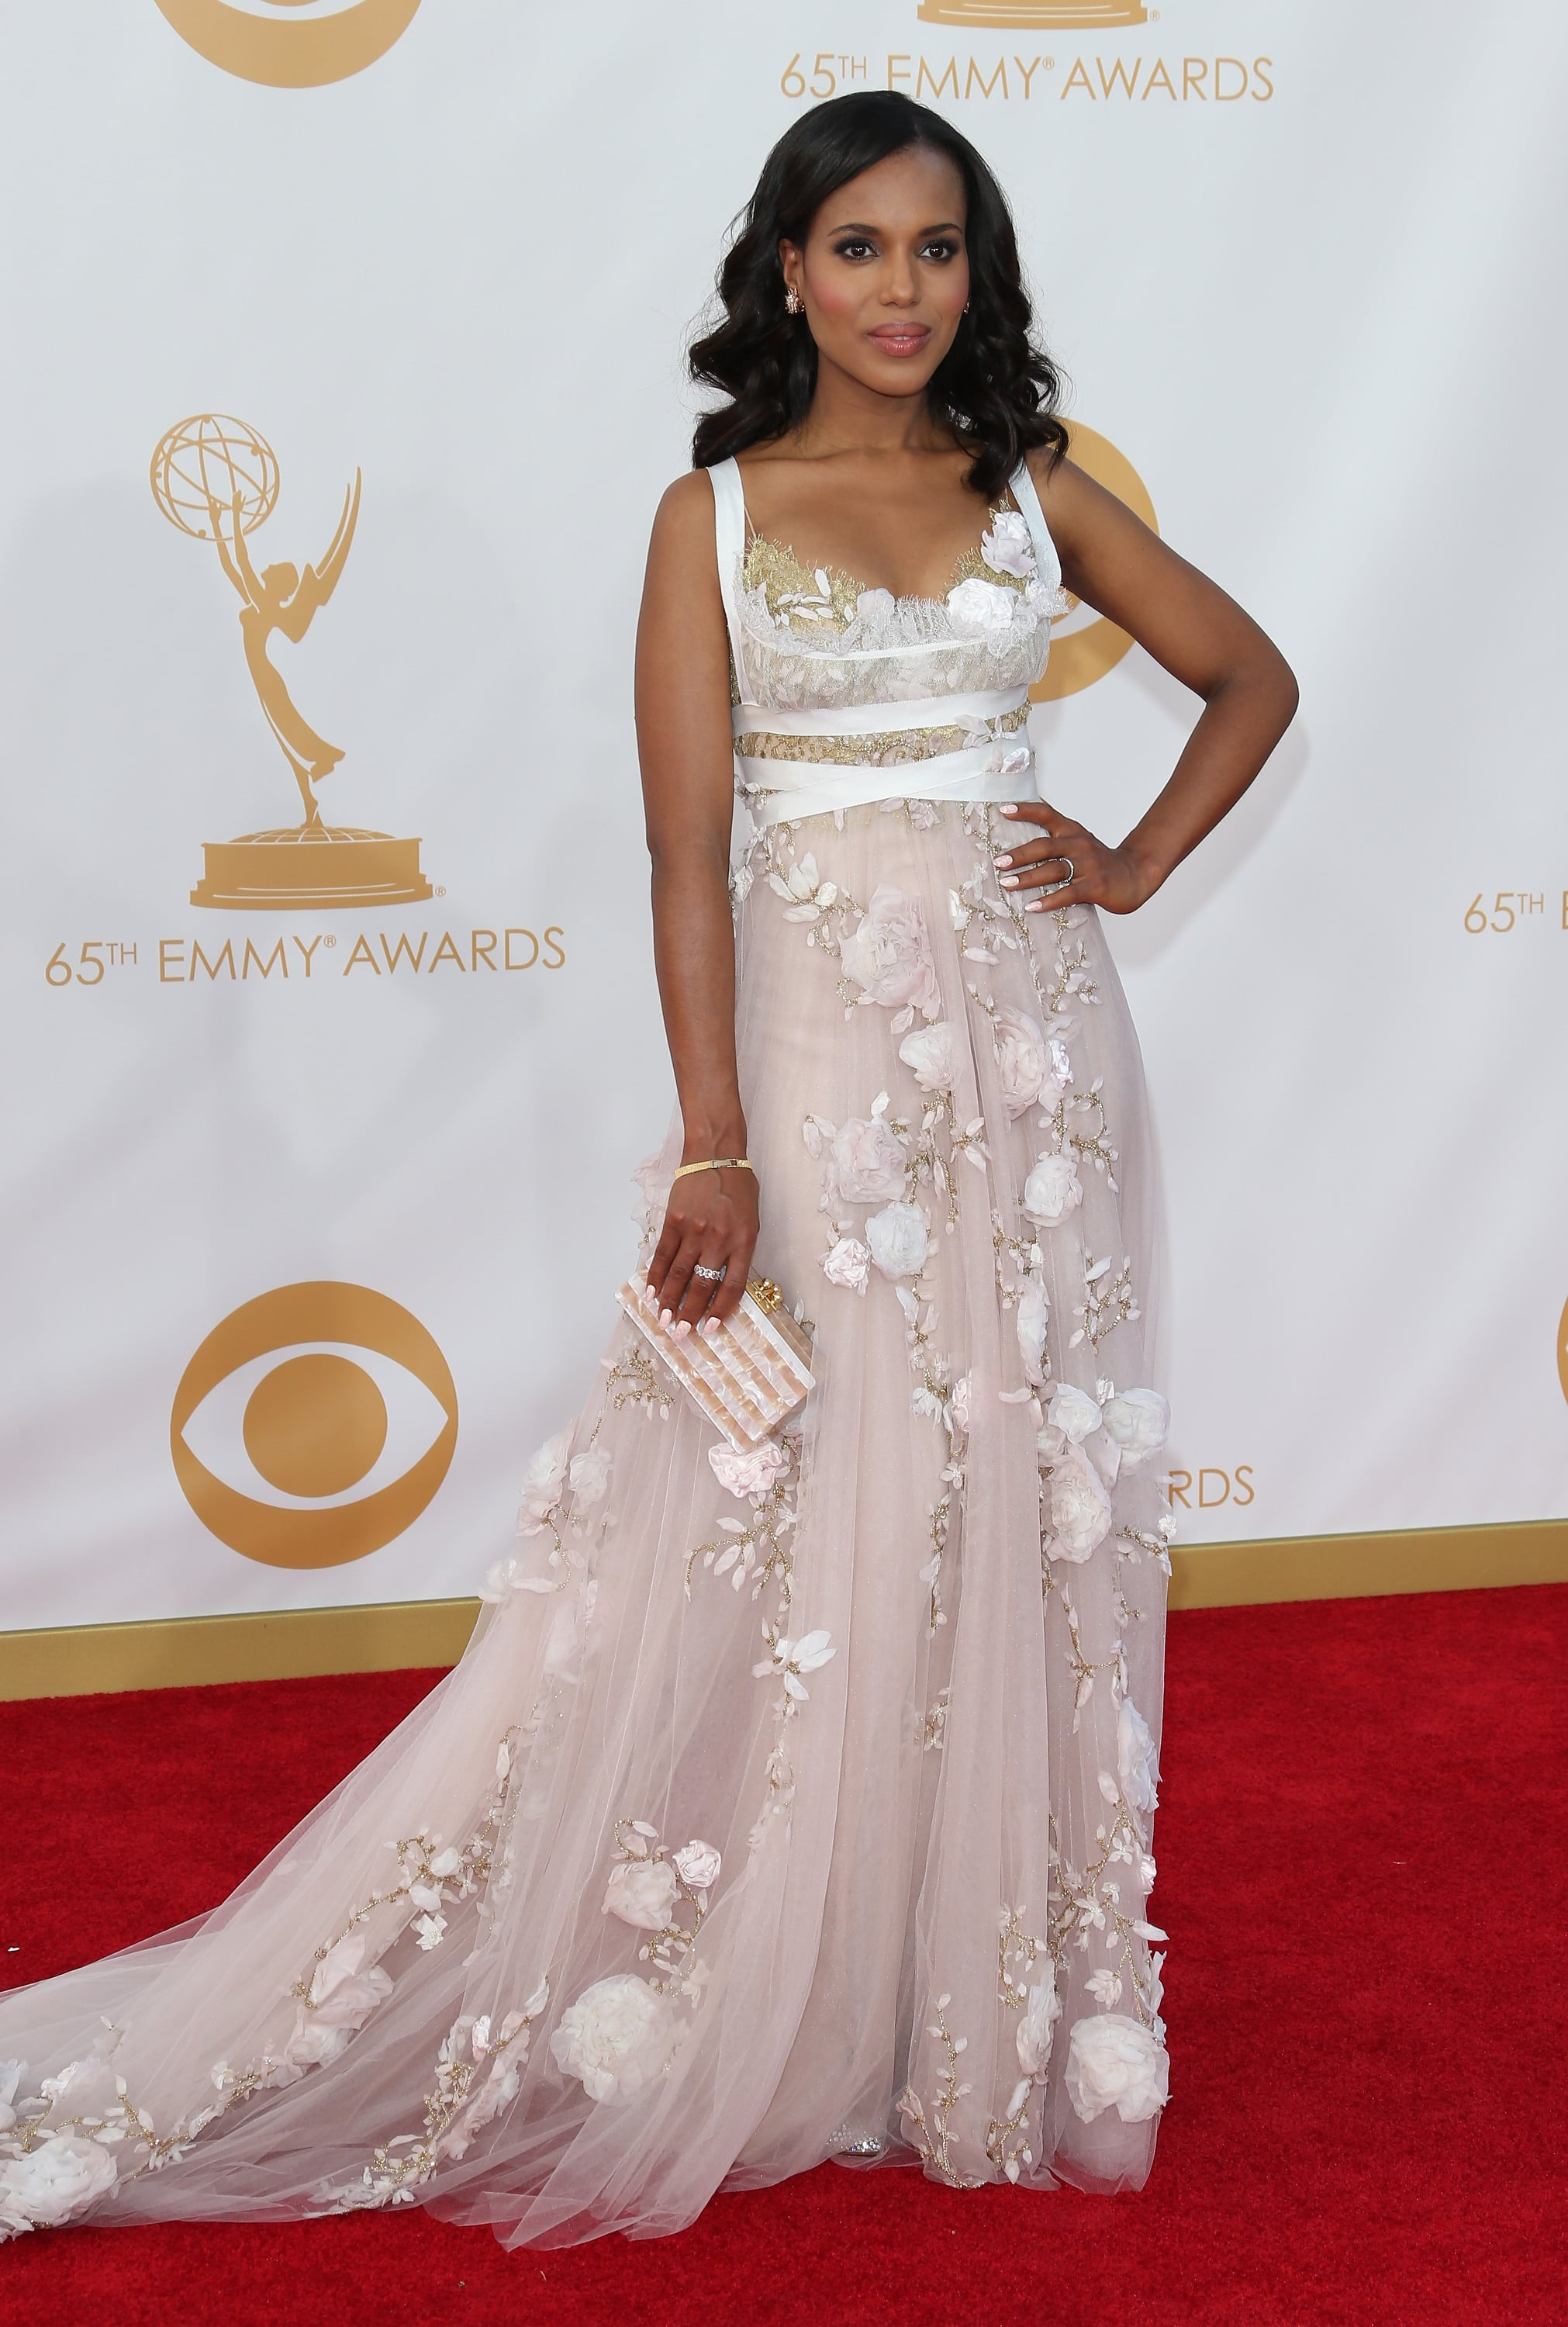 At the 2013 Emmy Awards, Washington wore a pale pink, high-waisted gown from Marchesa that was dotted with delicate floral embroidery.